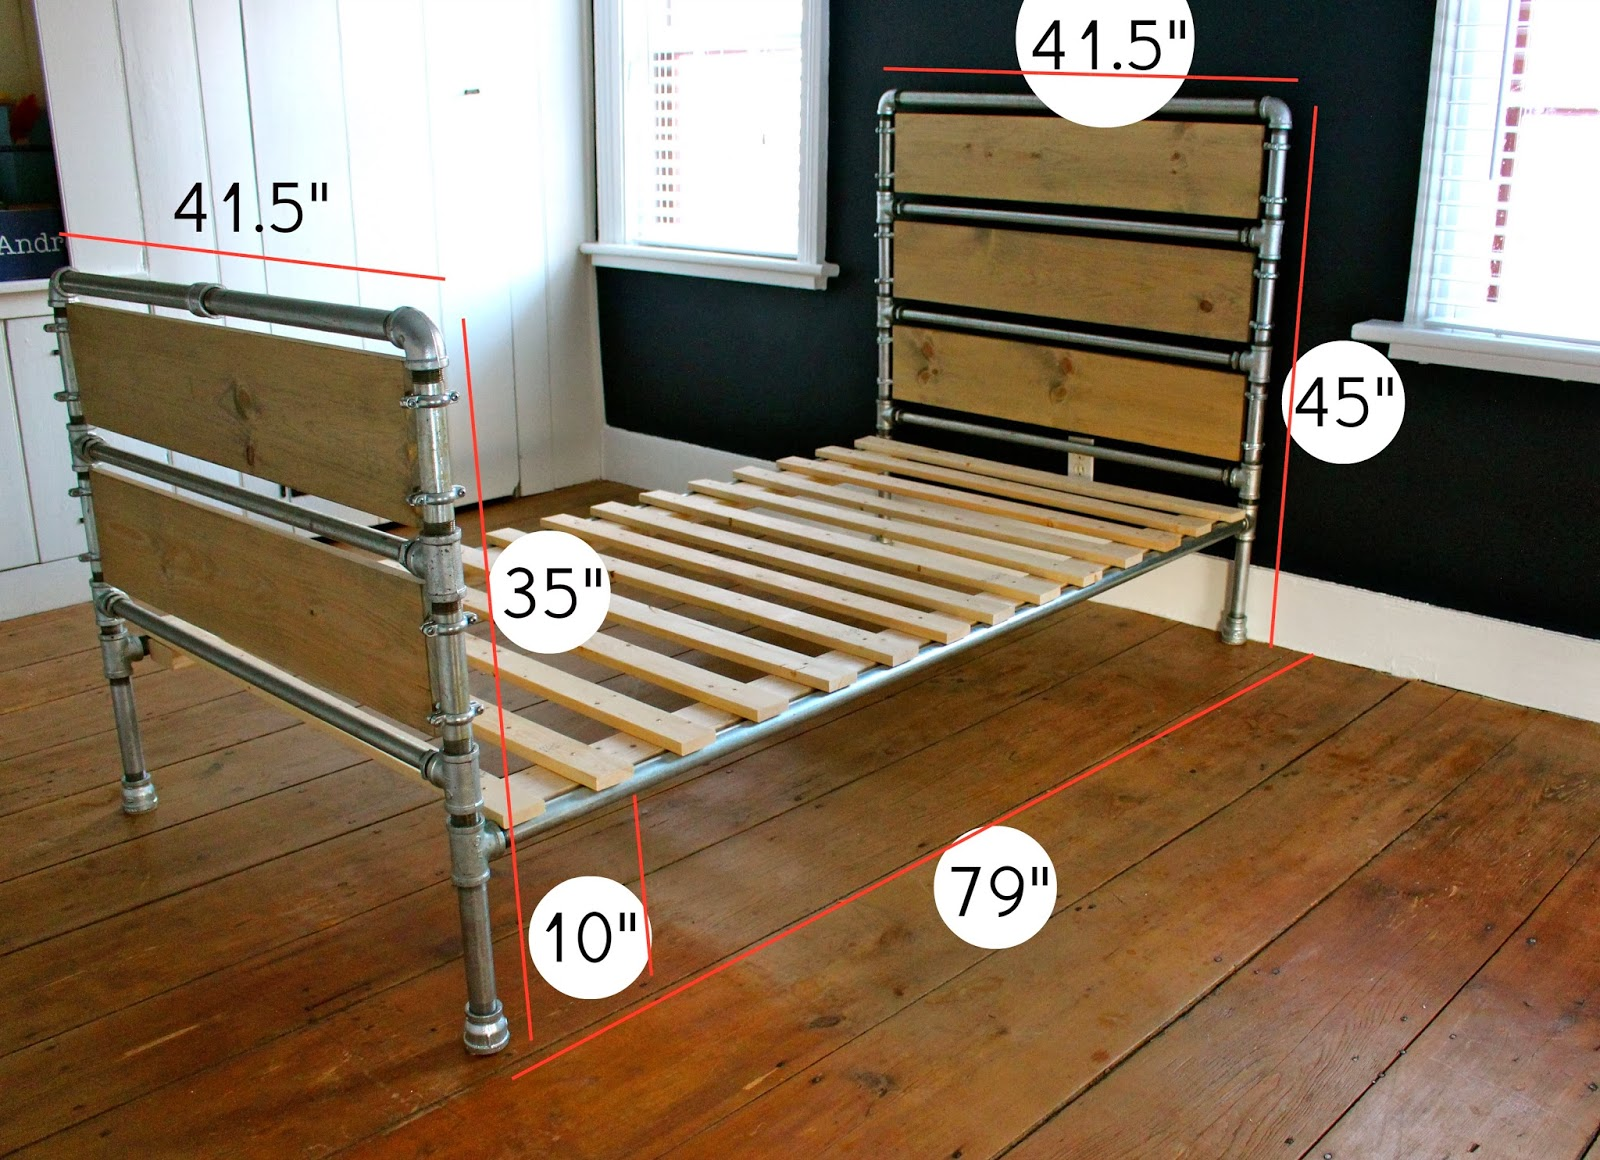 pipe bed dimensions